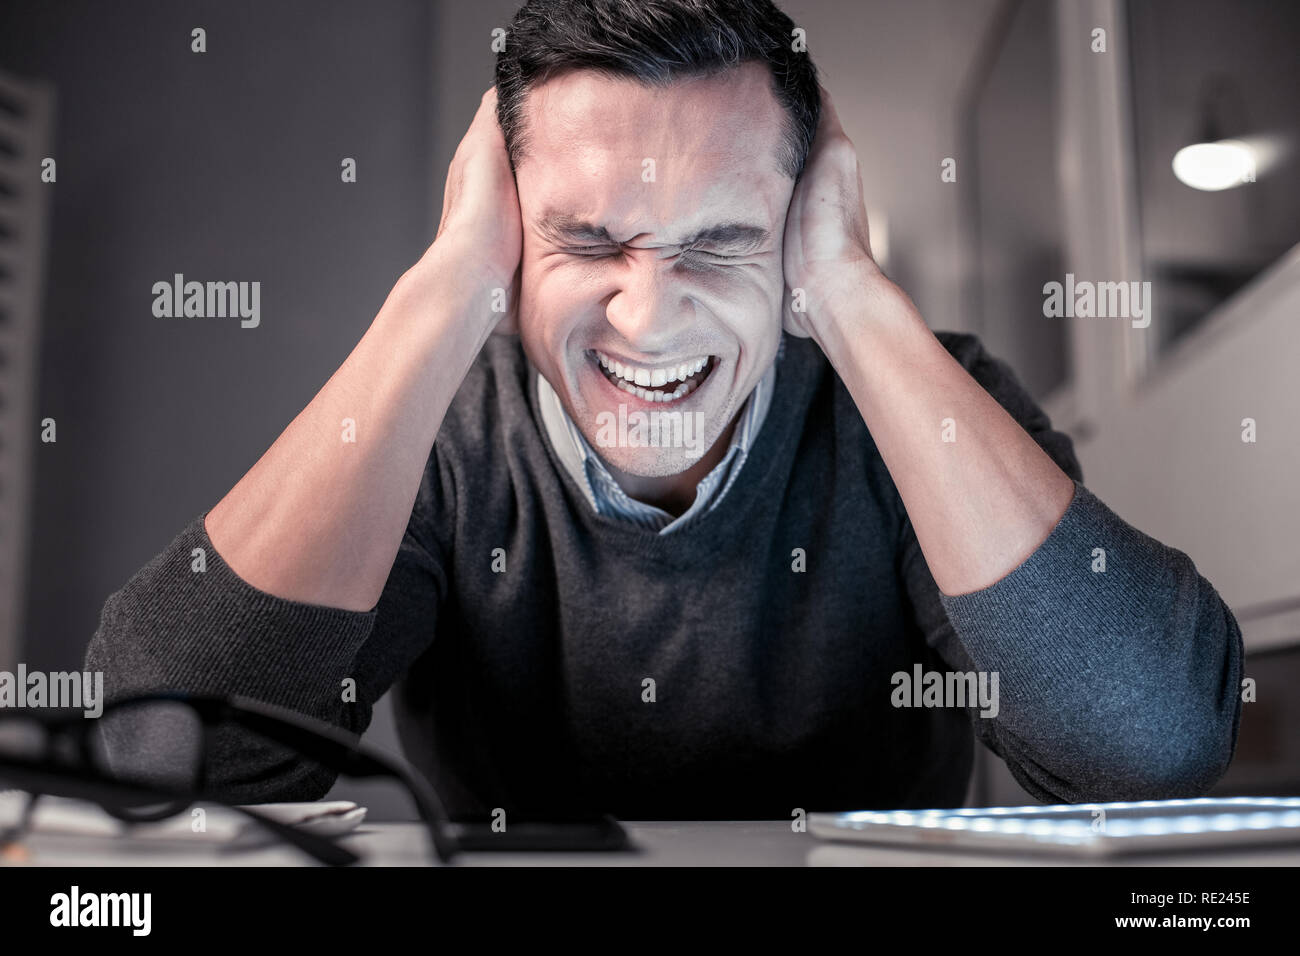 Unhappy cheerless man covering his ears with hands - Stock Image